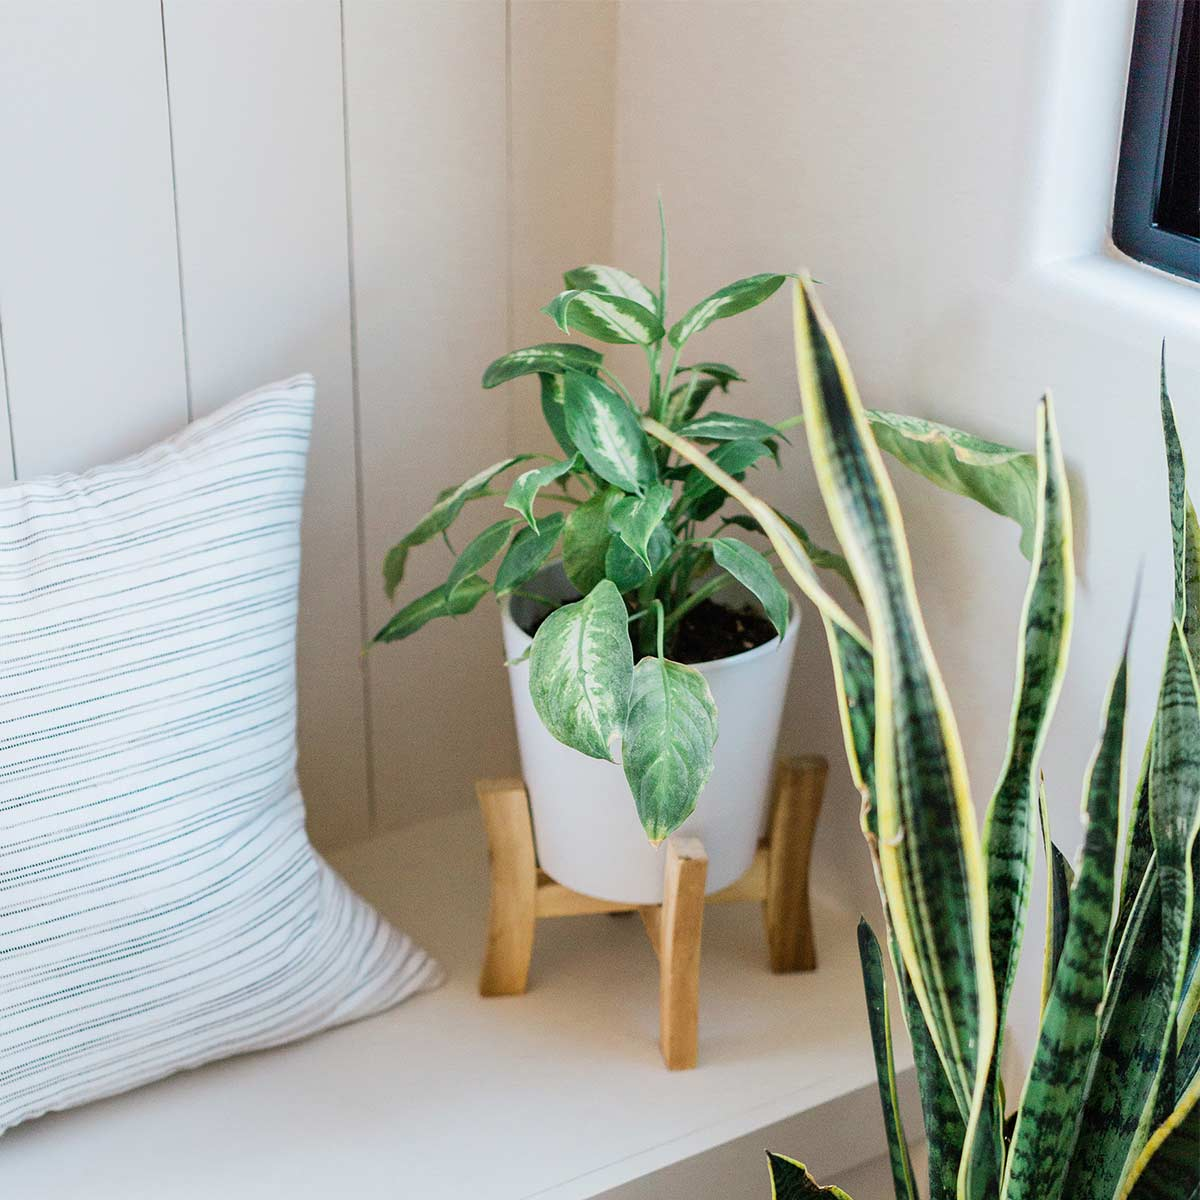 plants and striped pillow on simple and clutter-free white bench